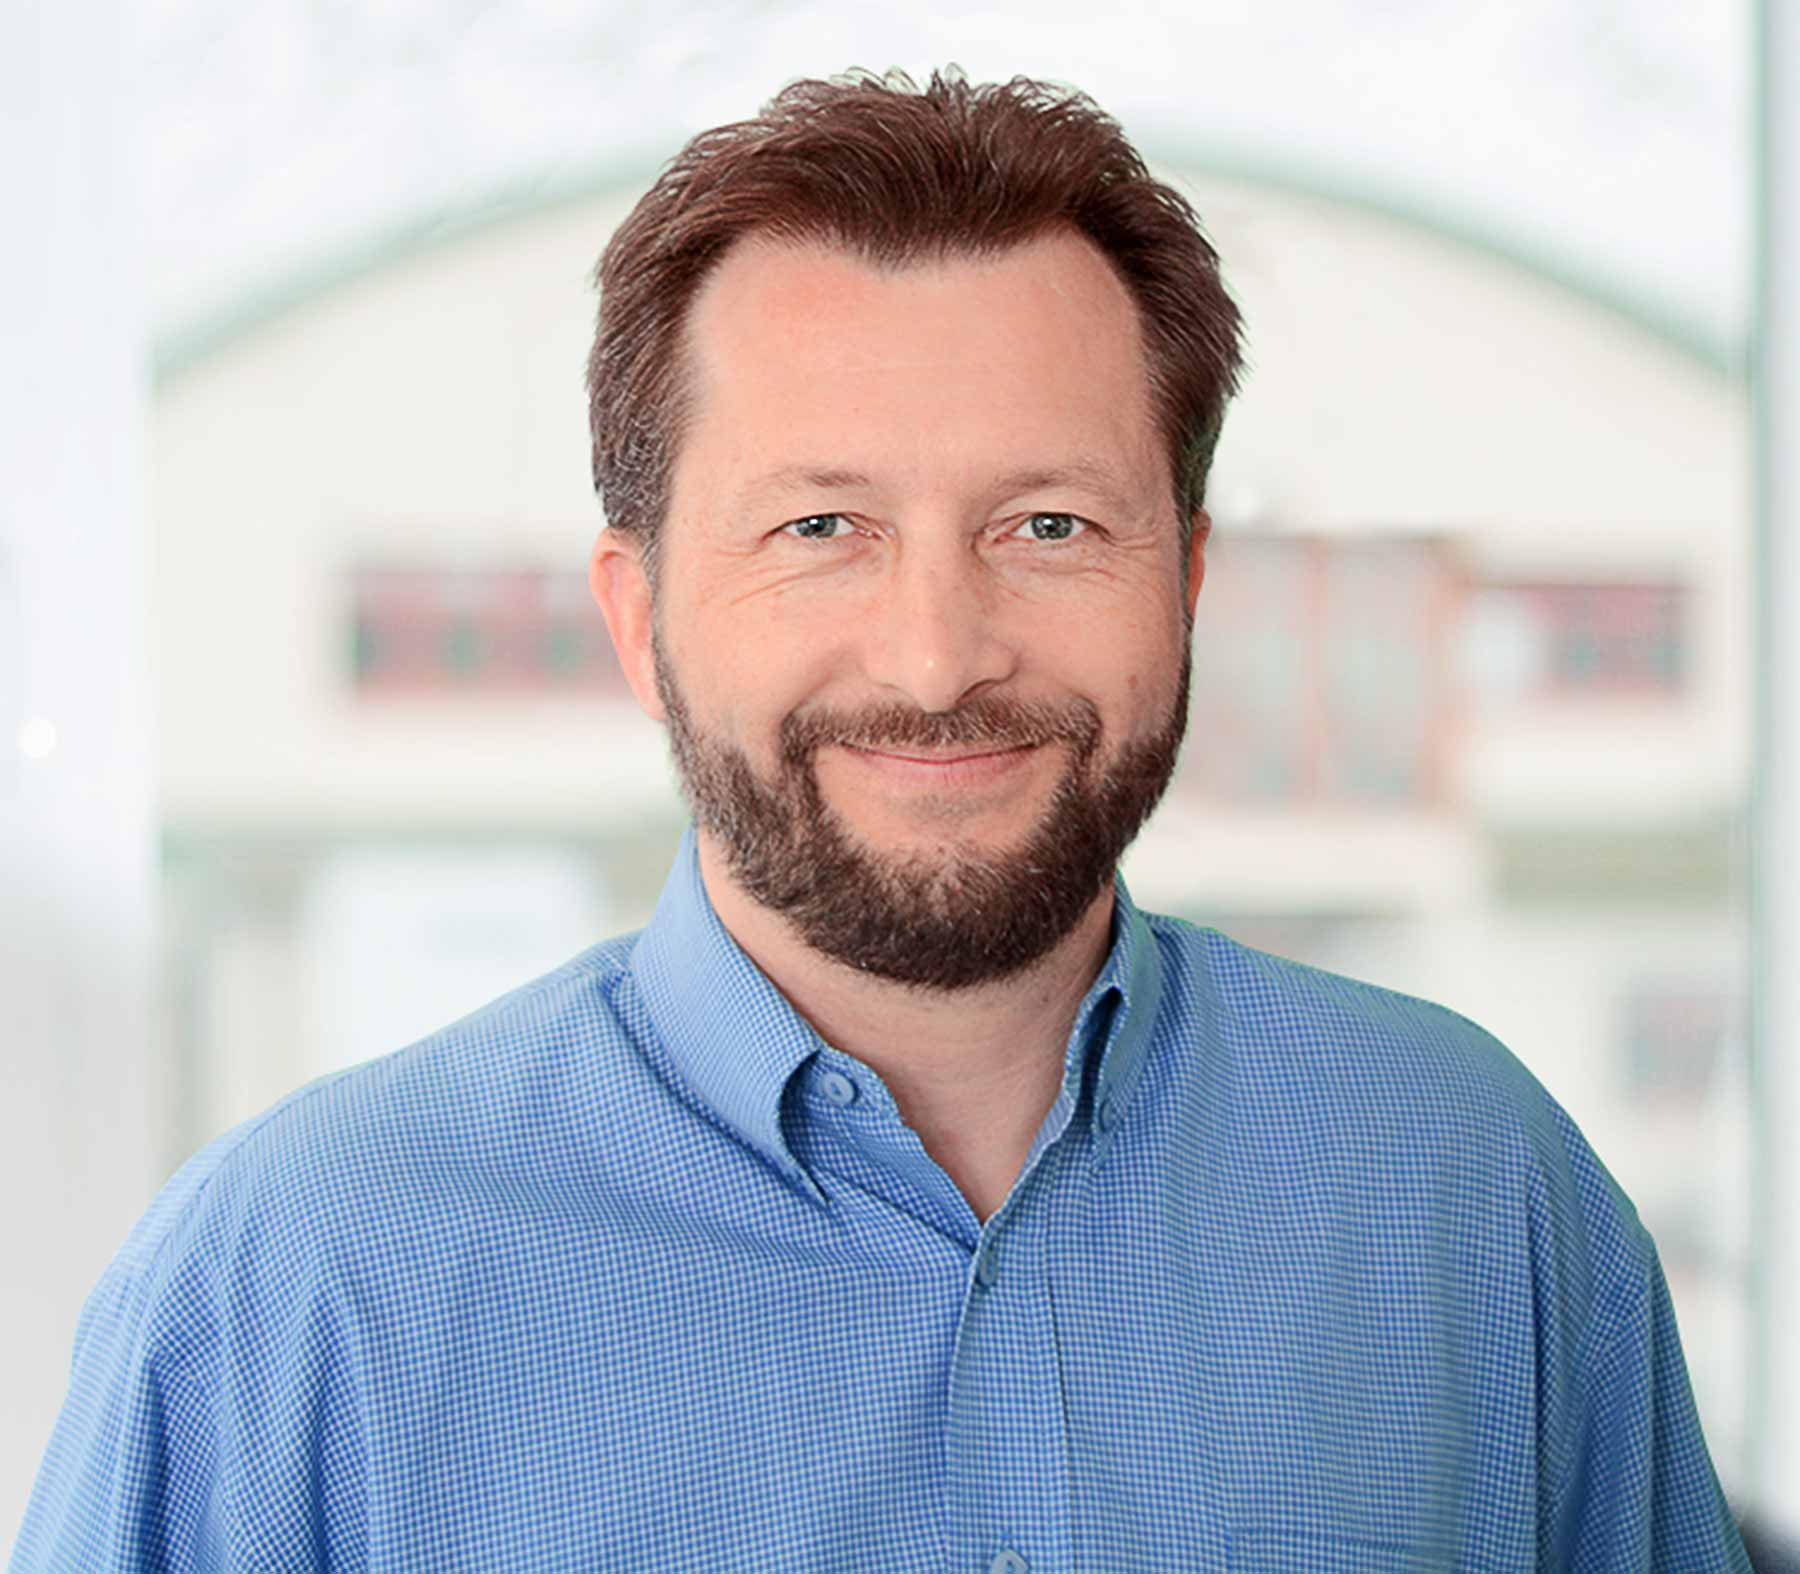 Portrait of the K-net manager of sales and marketing, Petr Župka